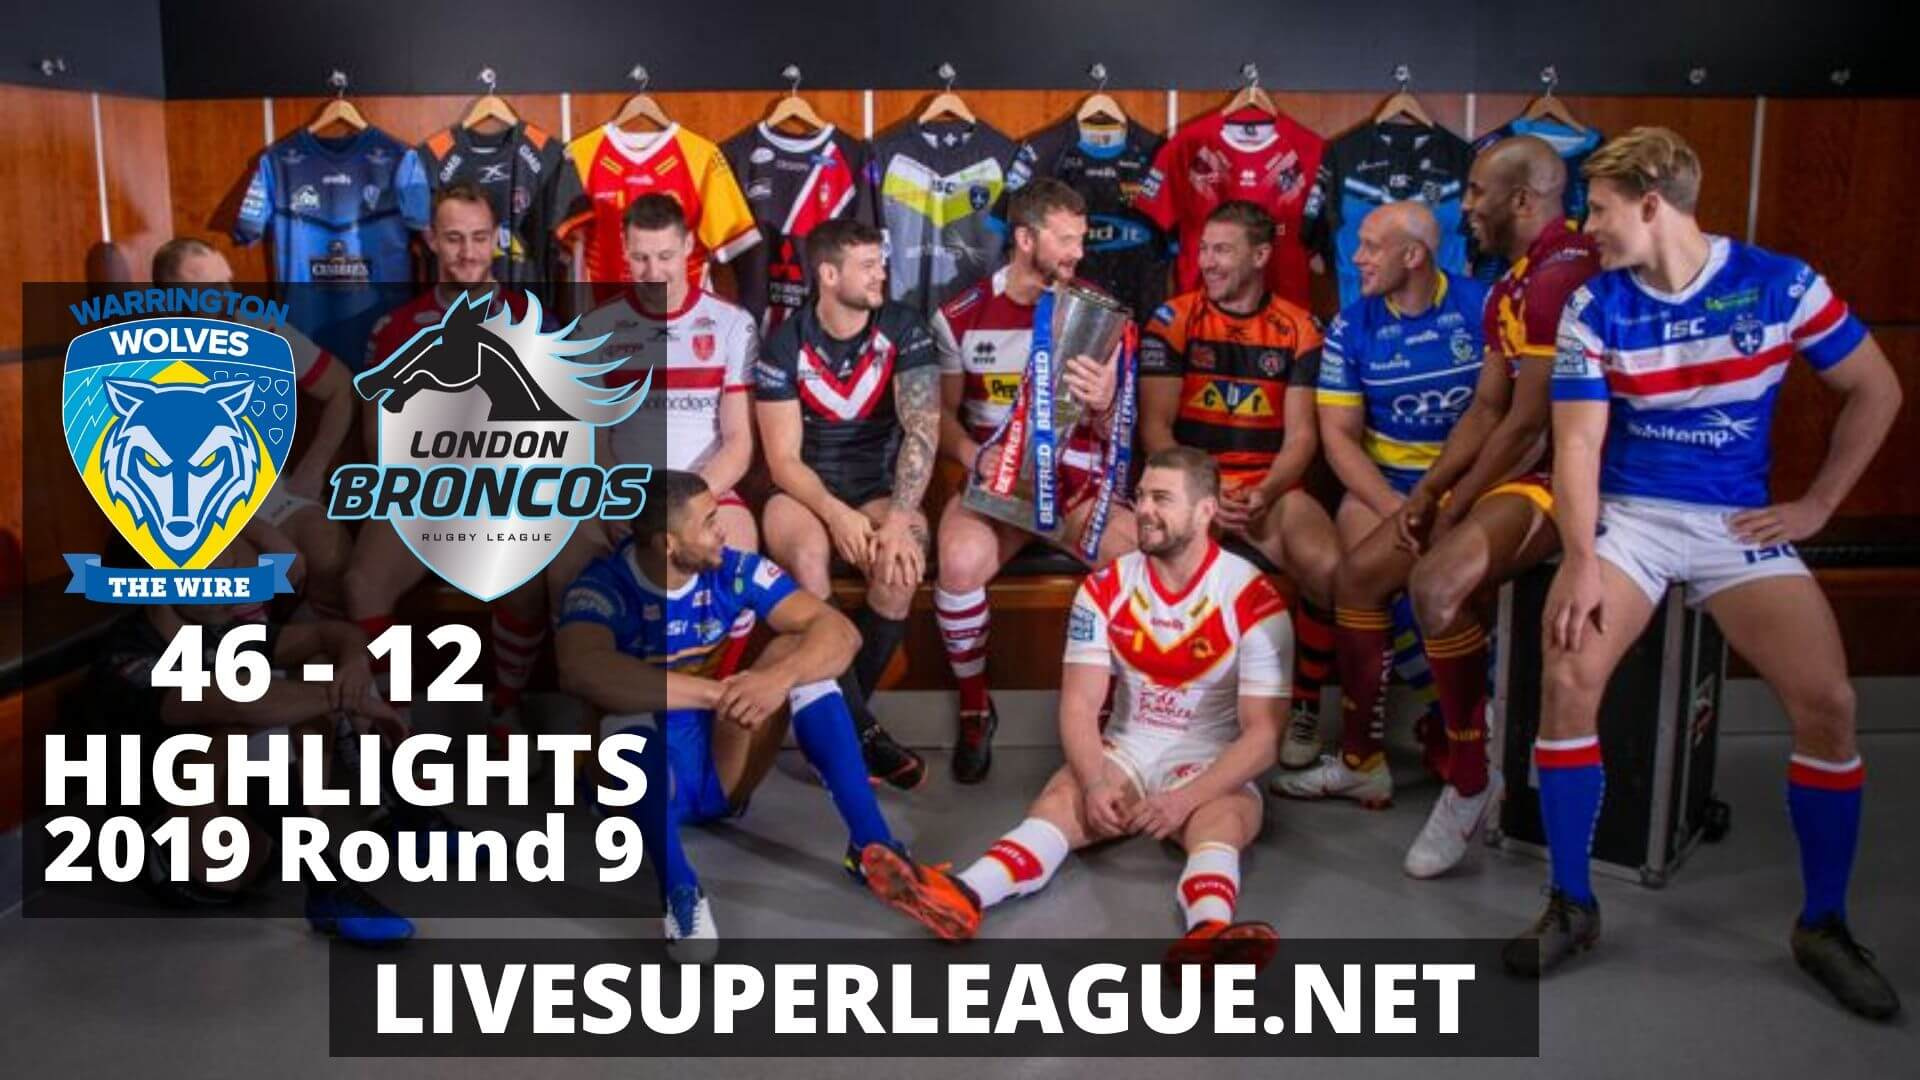 Warrington Wolves vs London Broncos Highlights 2019 Round 9